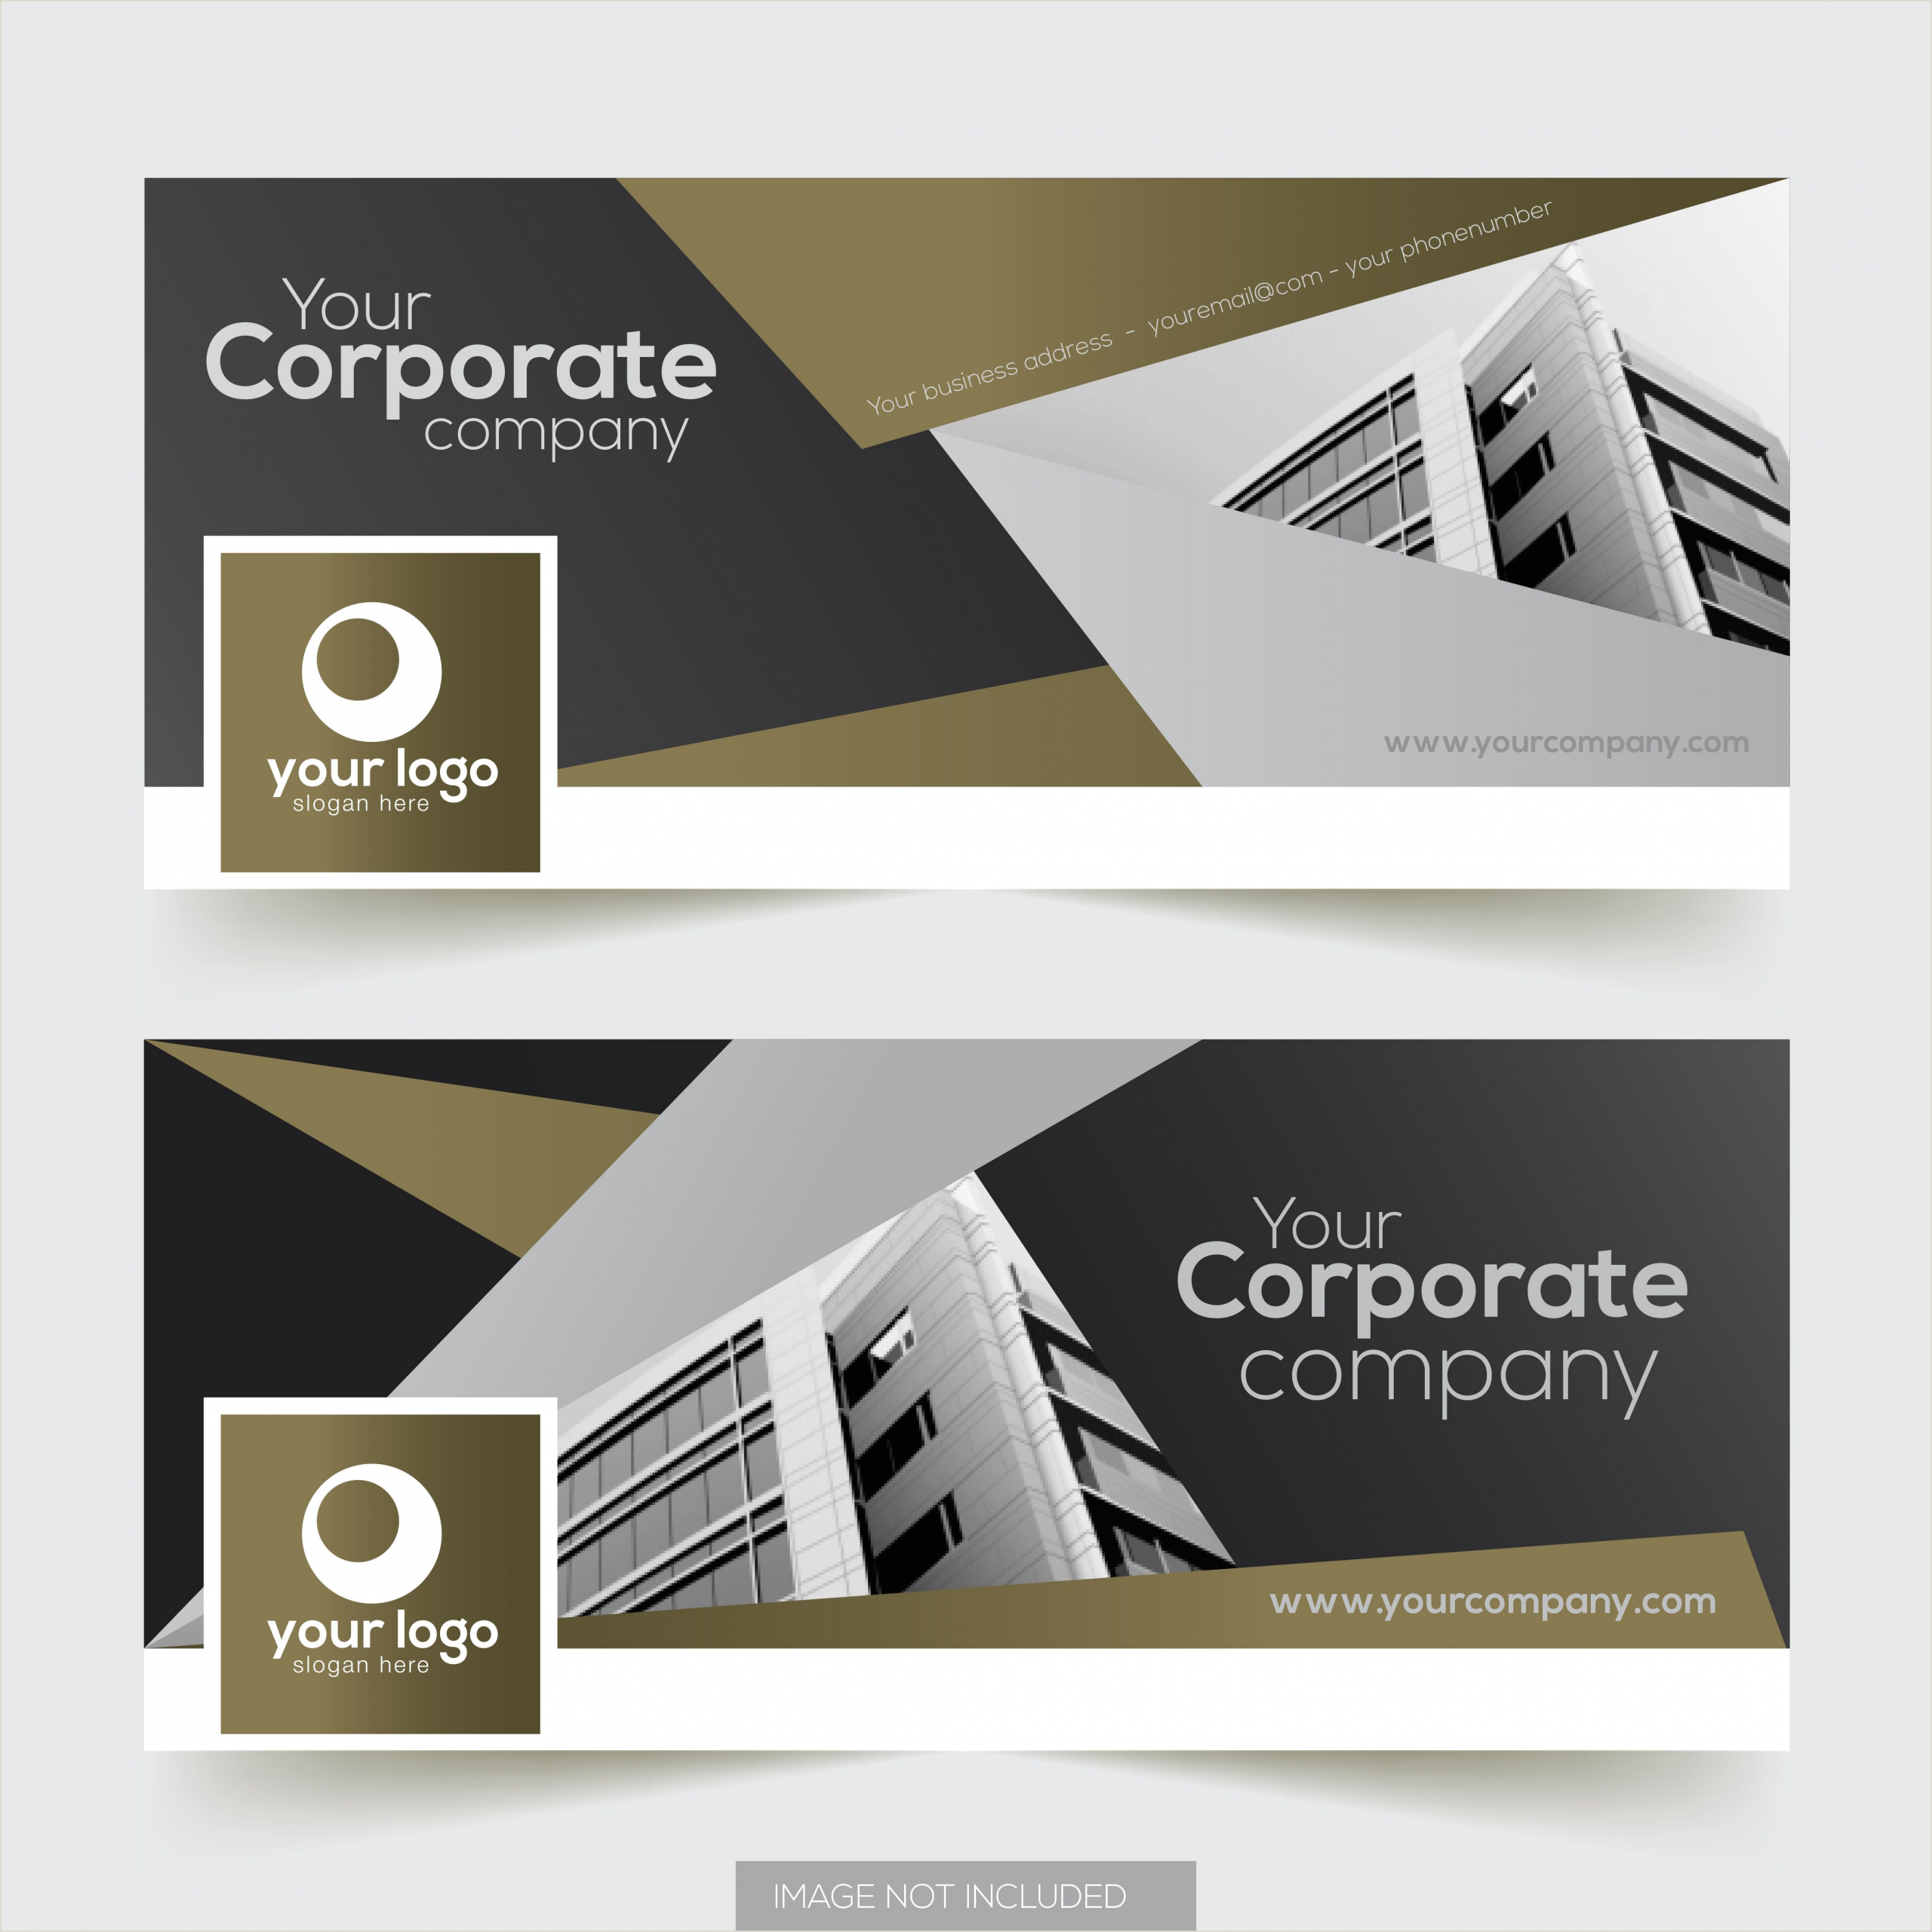 Social Media Business Card Templates Corporaate Cover Timeline Cover Corporate